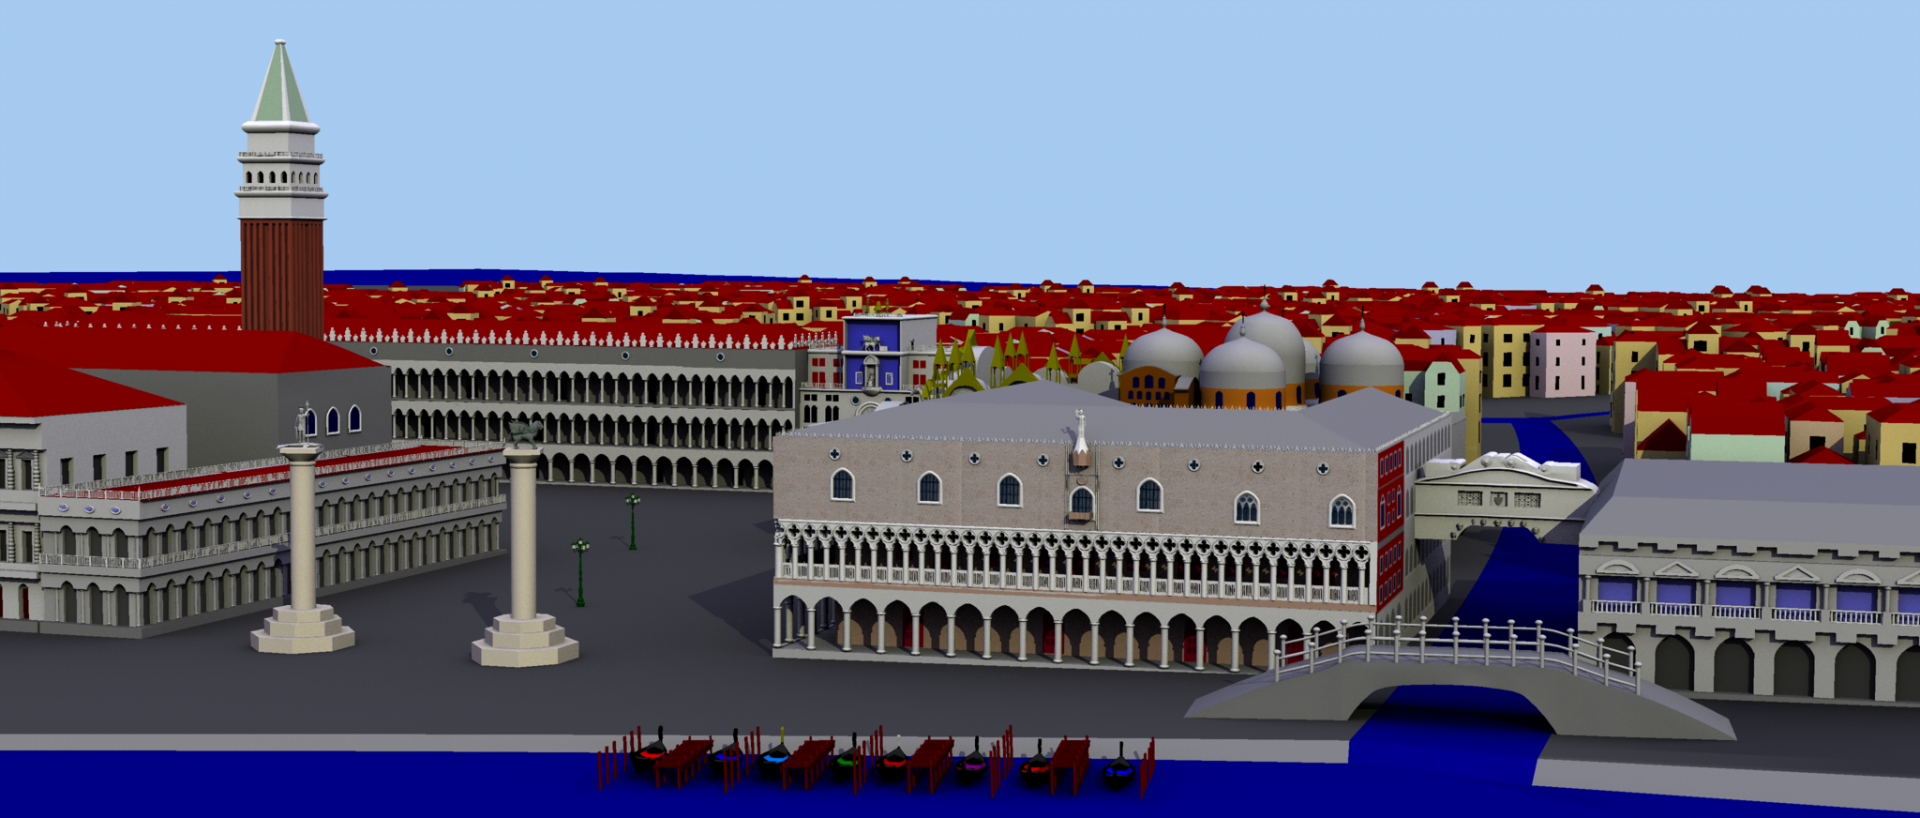 Venice in progress AOf sun0.png